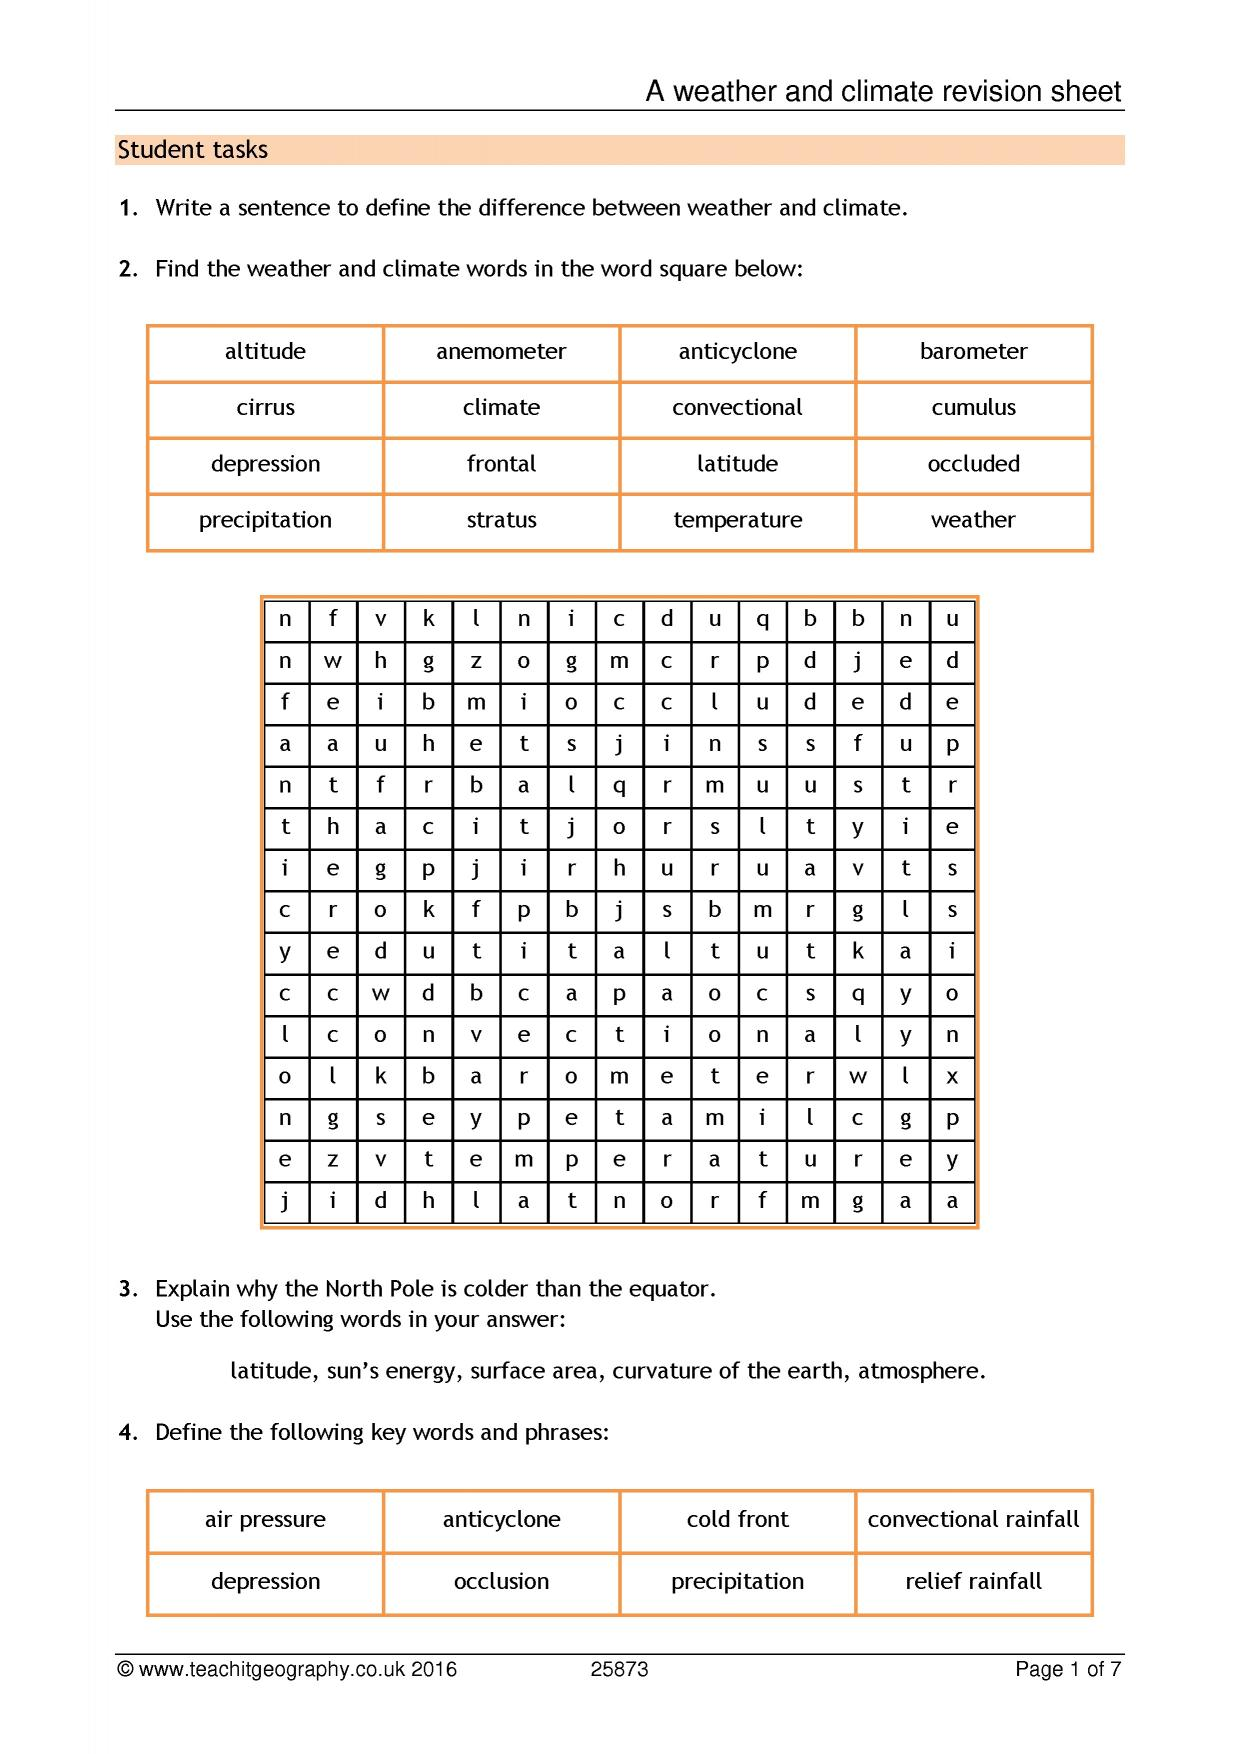 A weather and climate revision sheet